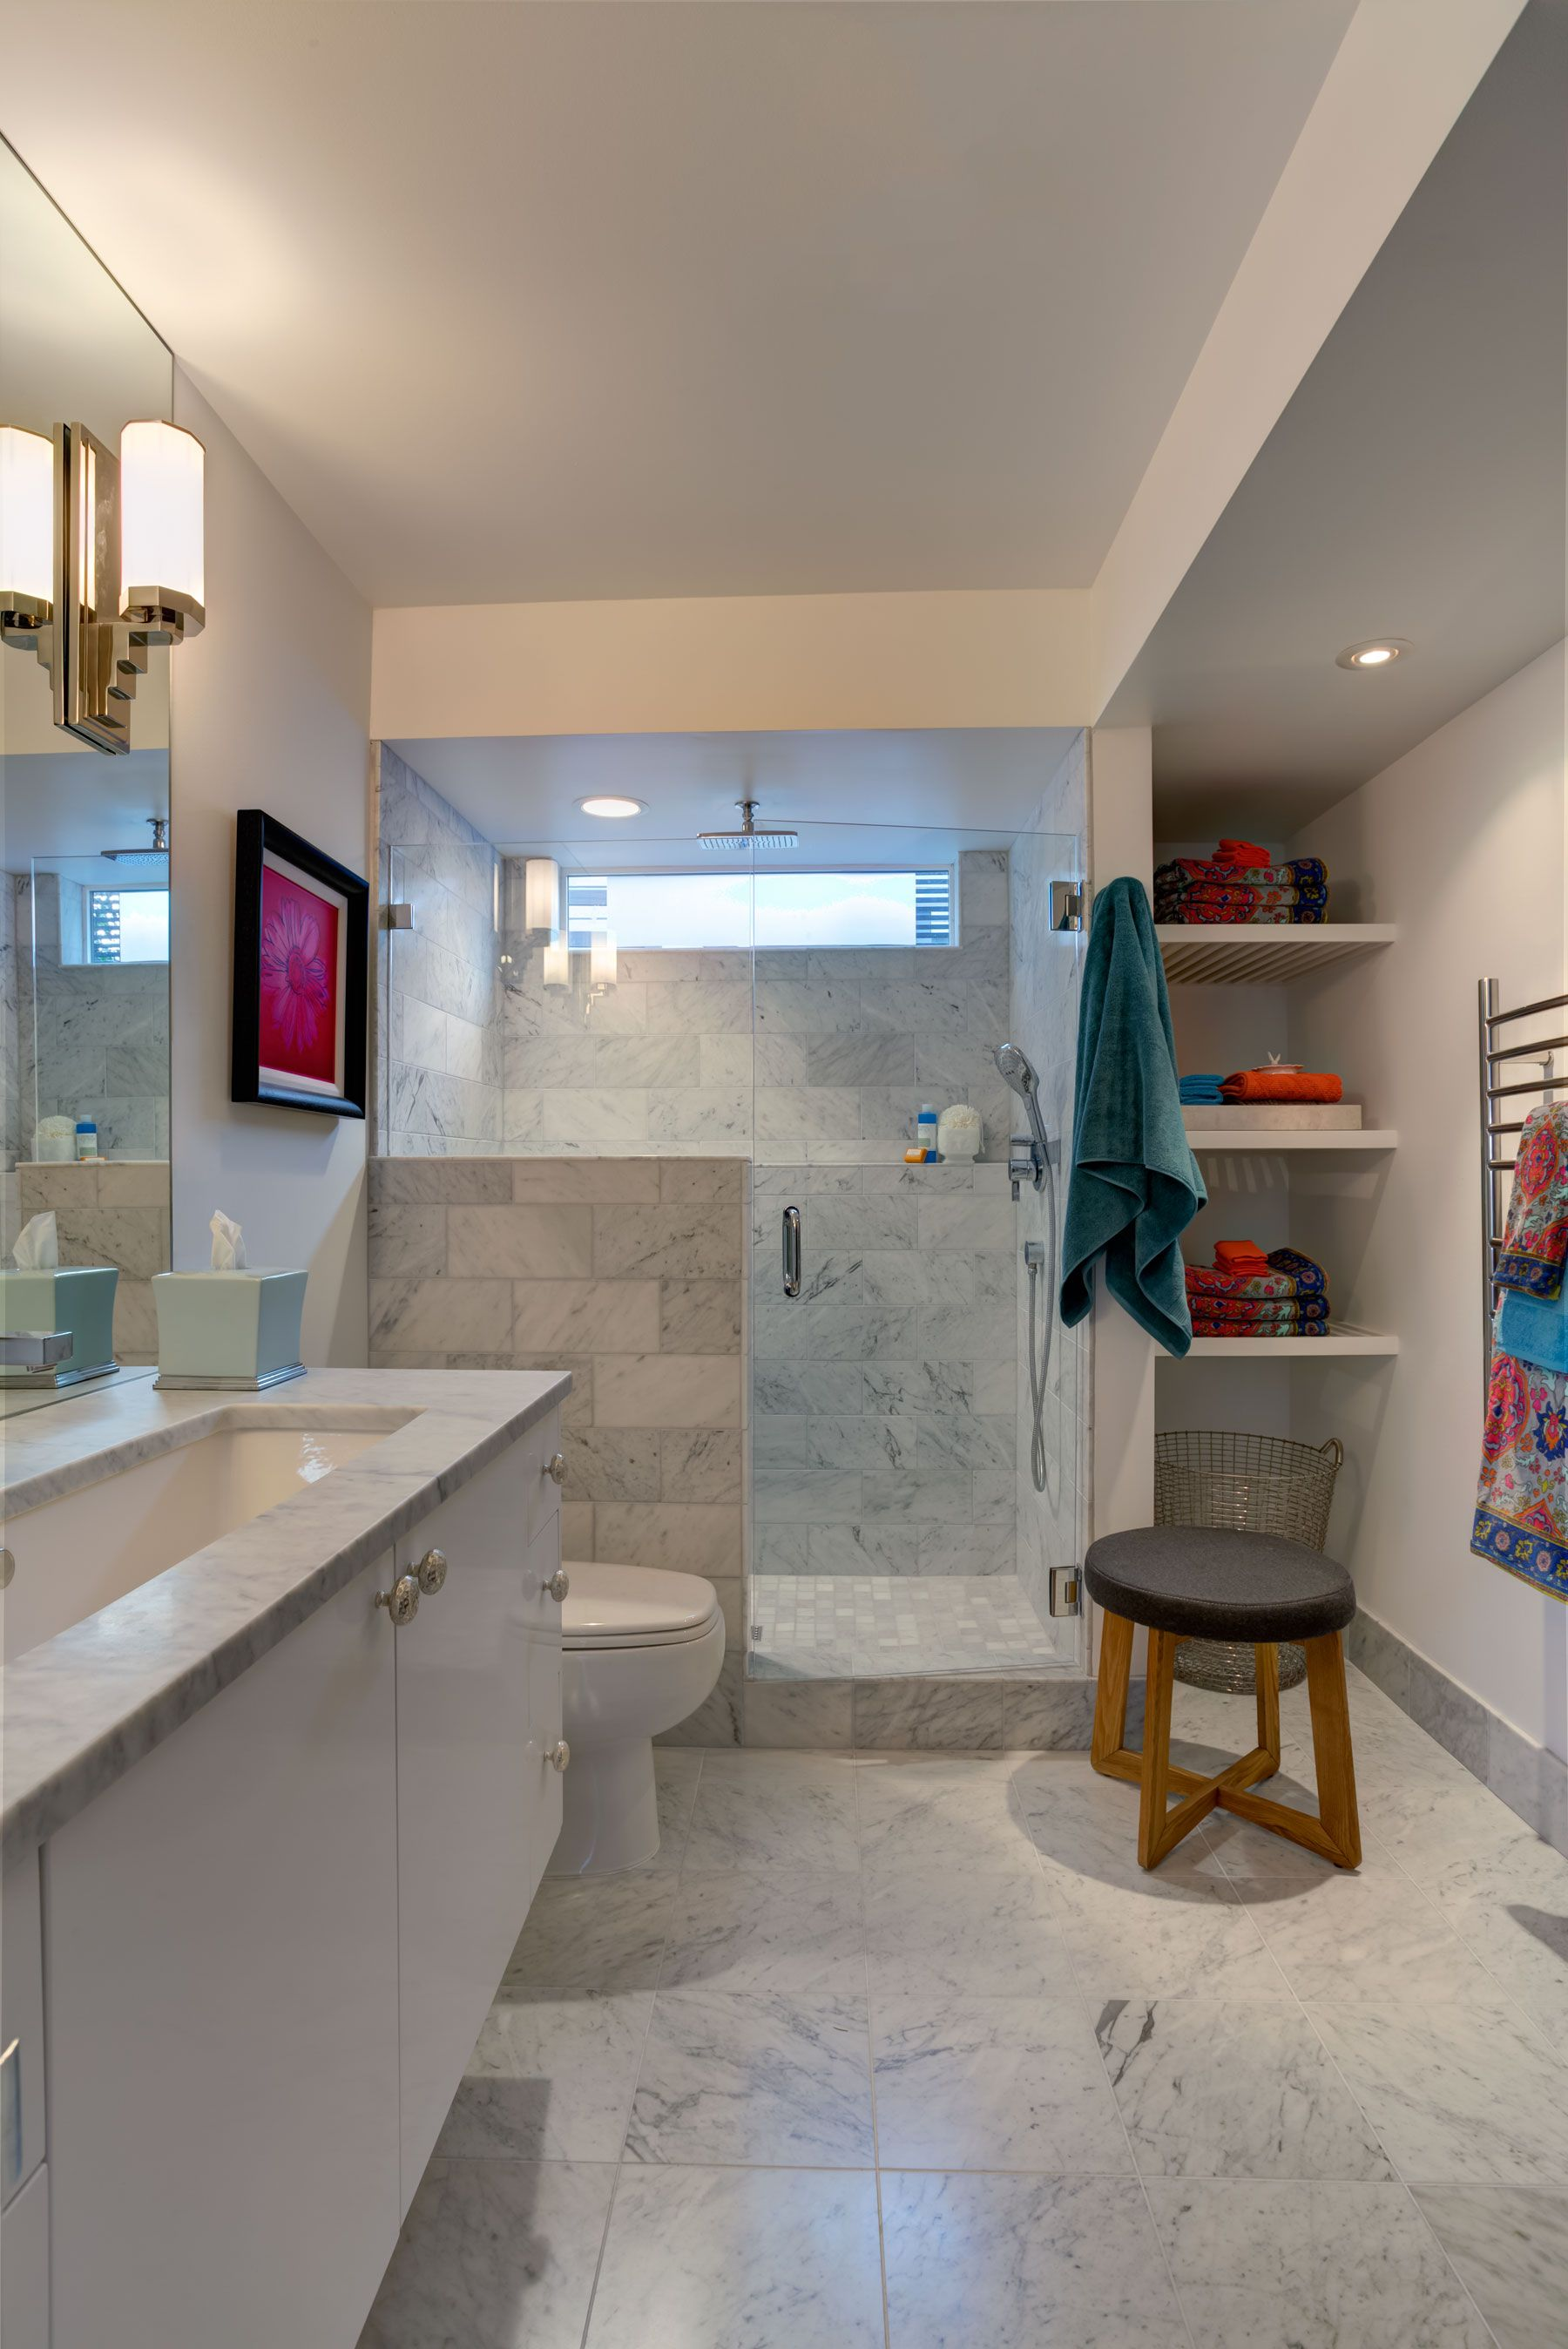 Council Crest Whole House Remodel | Bathroom remodel ...